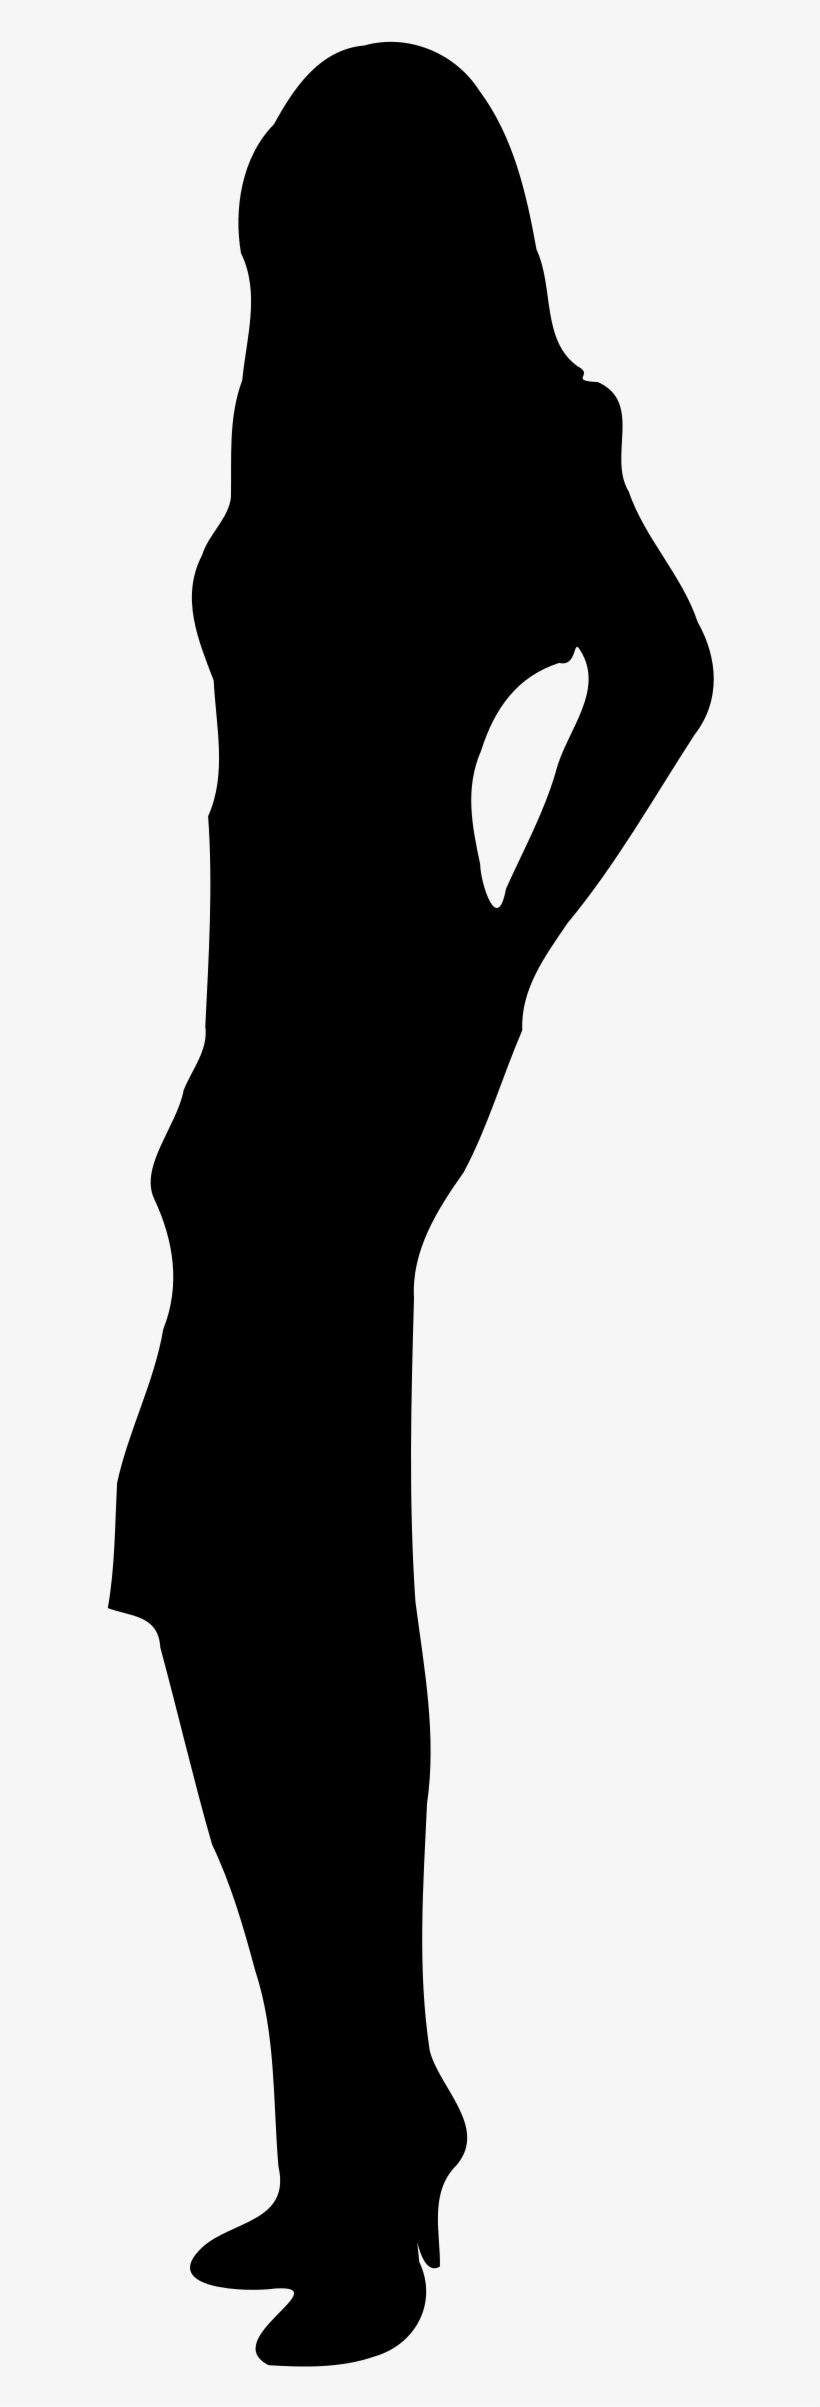 Woman Standing Silhouette Png - Woman Standing Silhouette, transparent png #134259